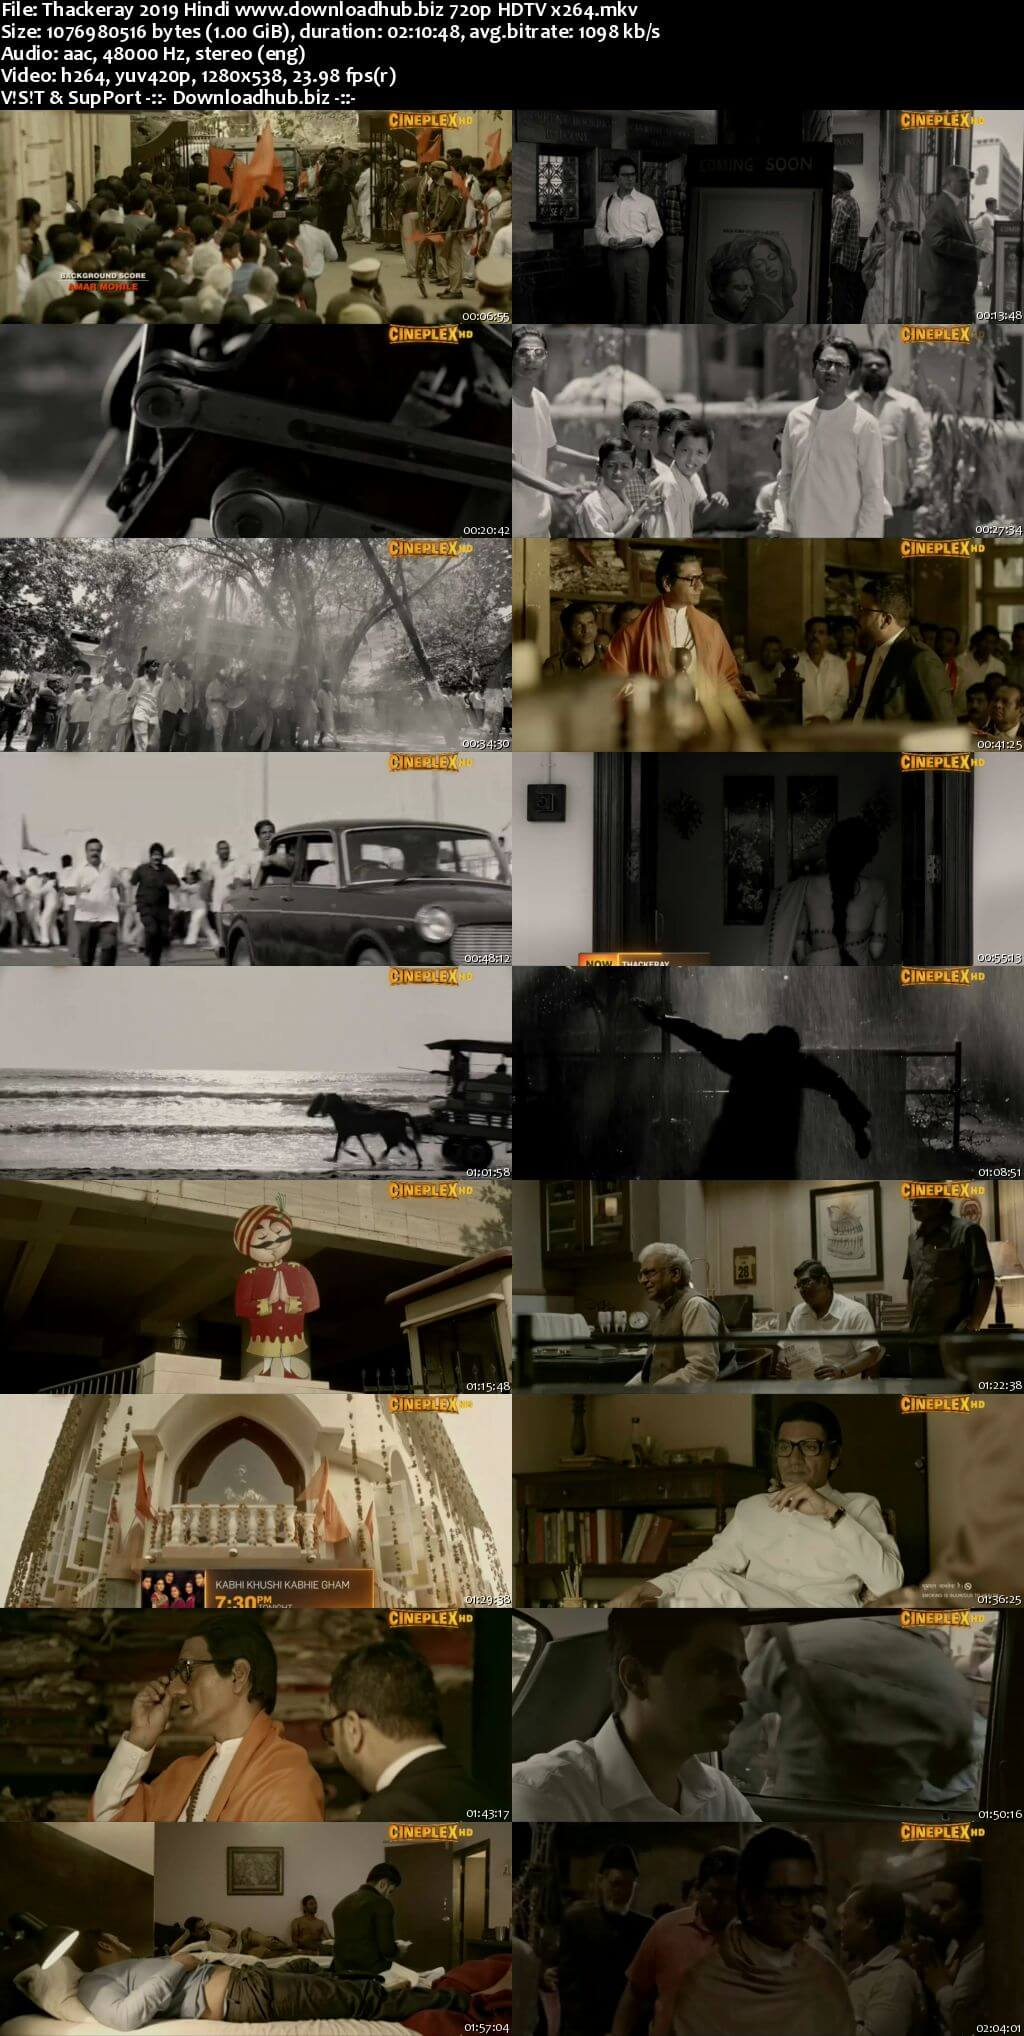 Thackeray 2019 Hindi 720p HDTV x264